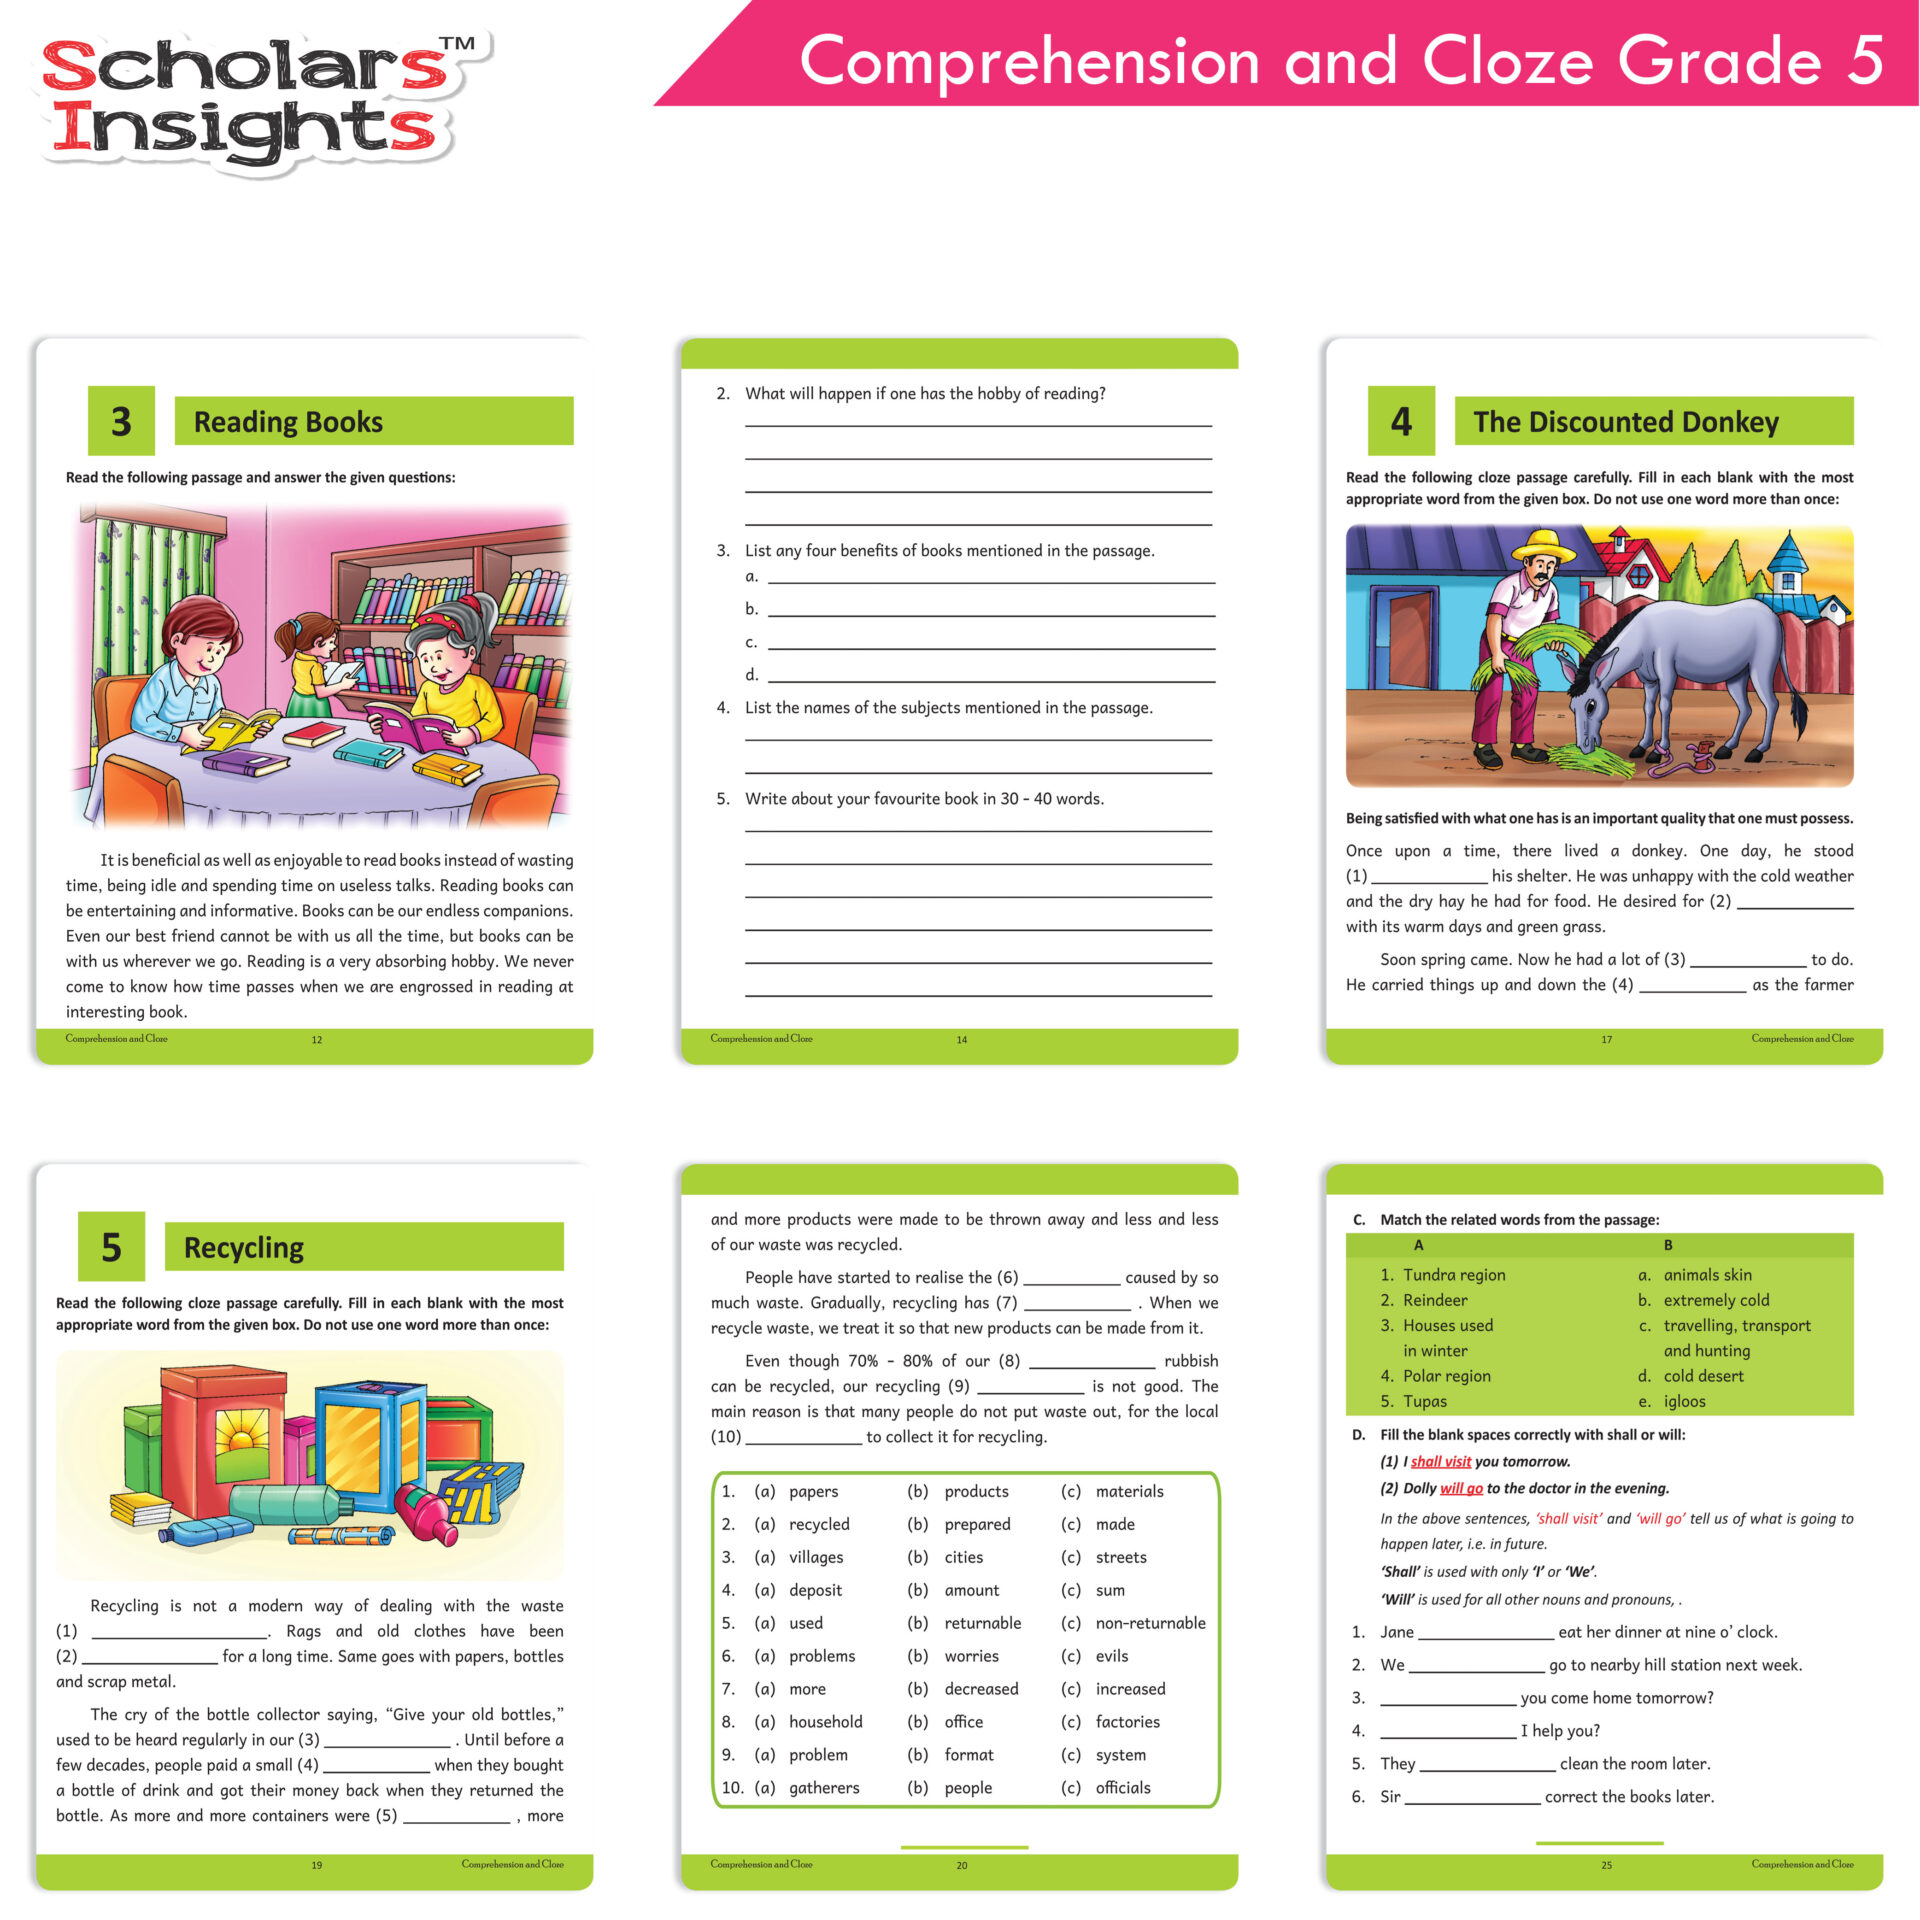 Scholars Insights Comprehension and Cloze Grade 5 4 1